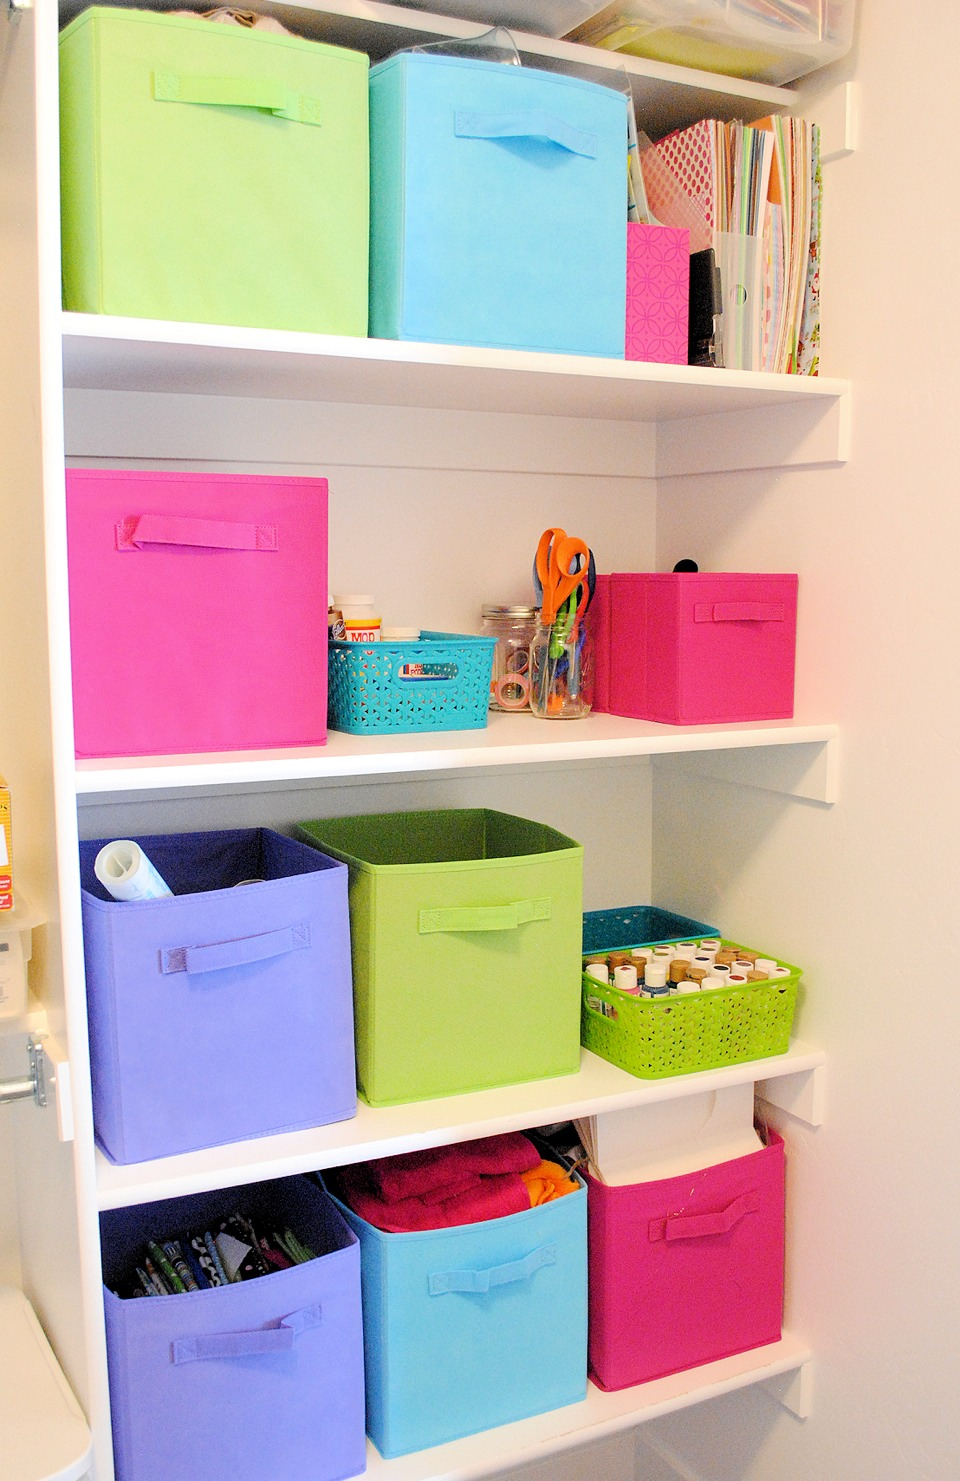 Organize Your things